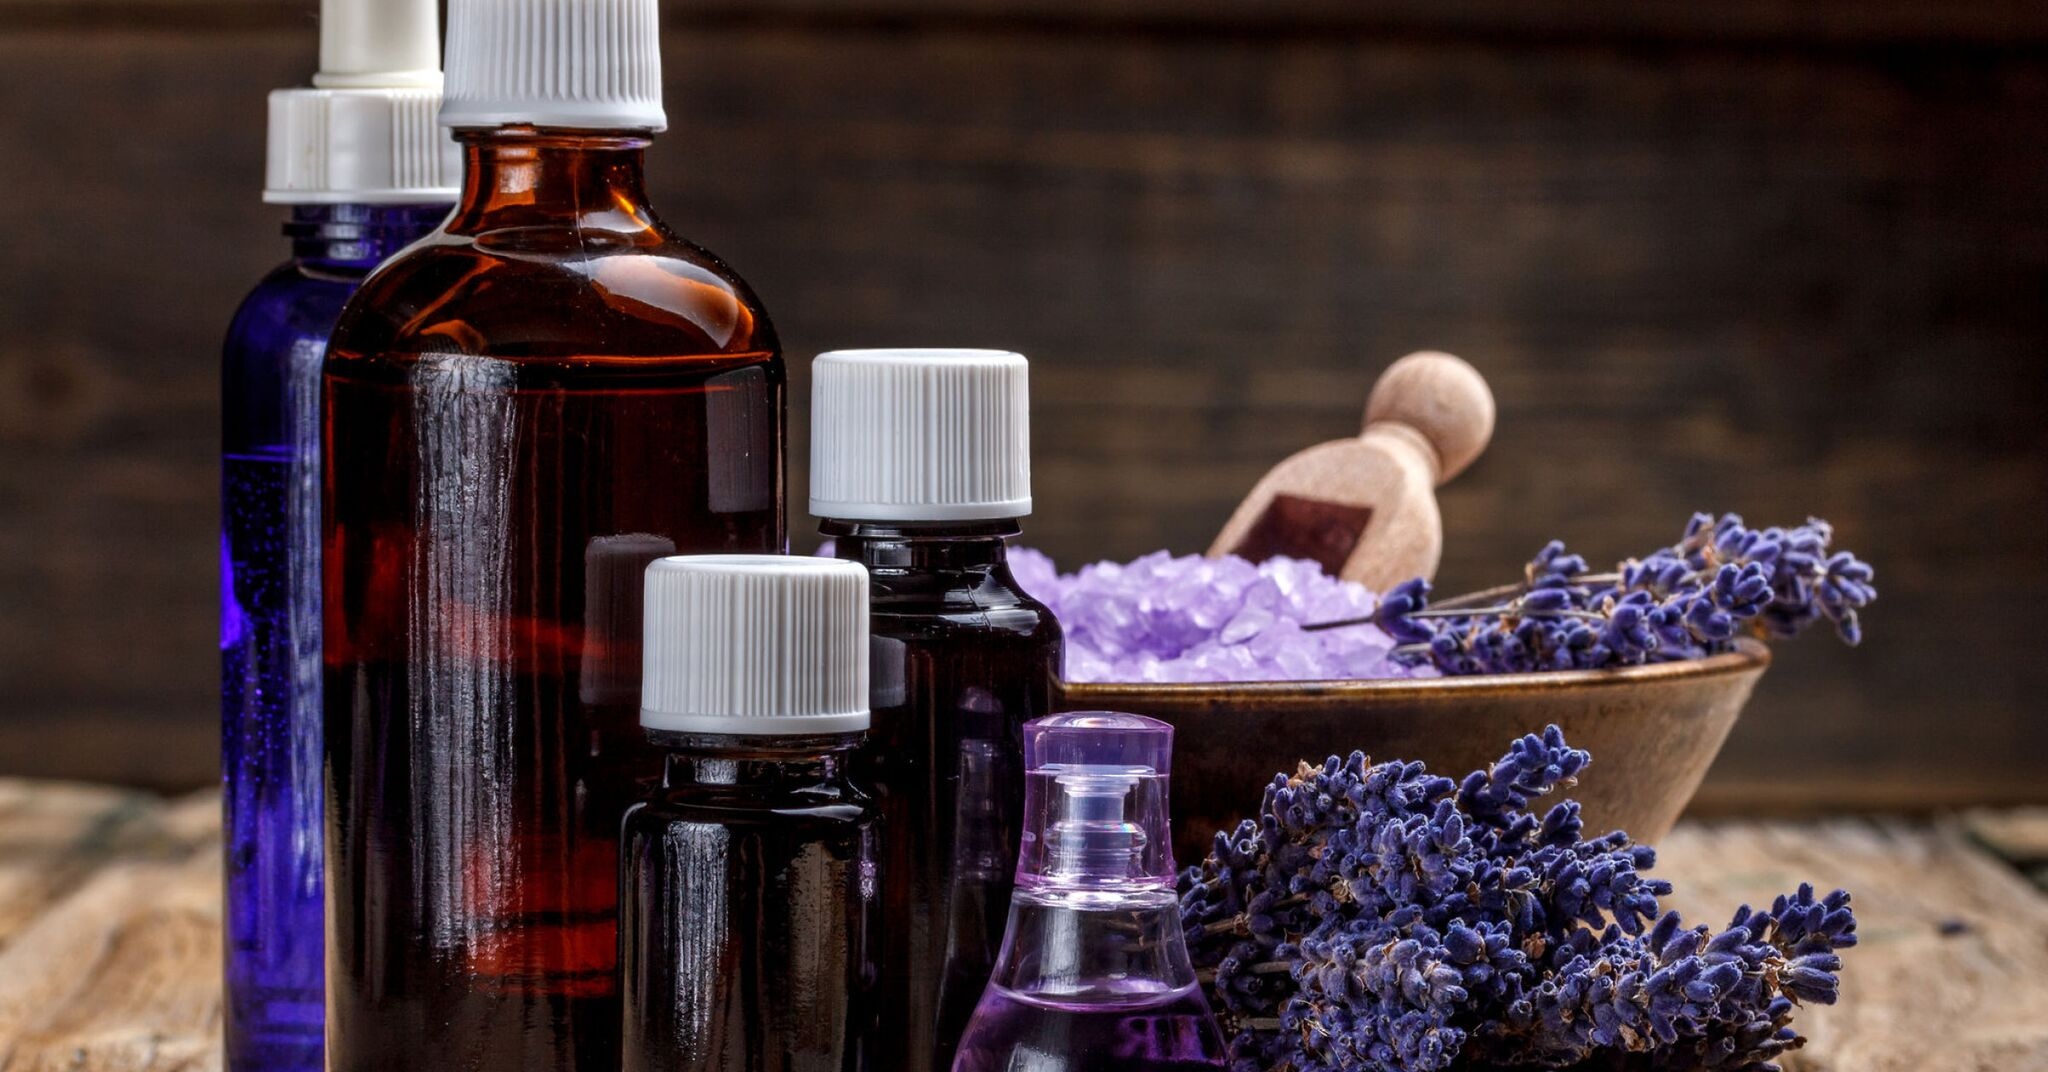 10 Essential Oils for Health⎢ 10 Essential Oils for Your